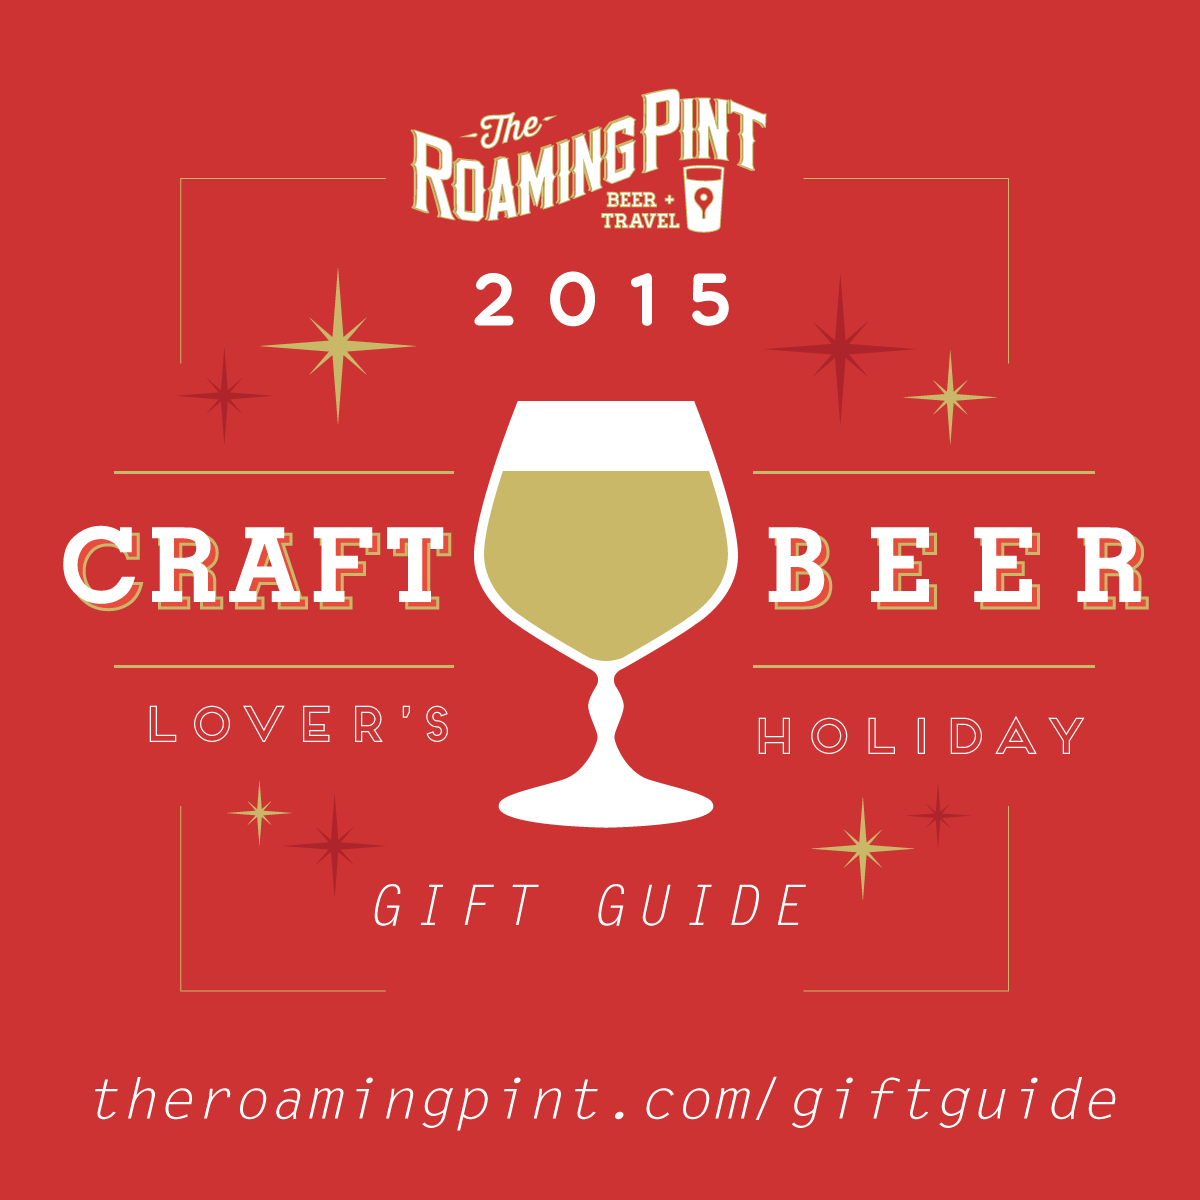 2015 Craft Beer Lover's Holiday Gift Guide from The Roaming Pint